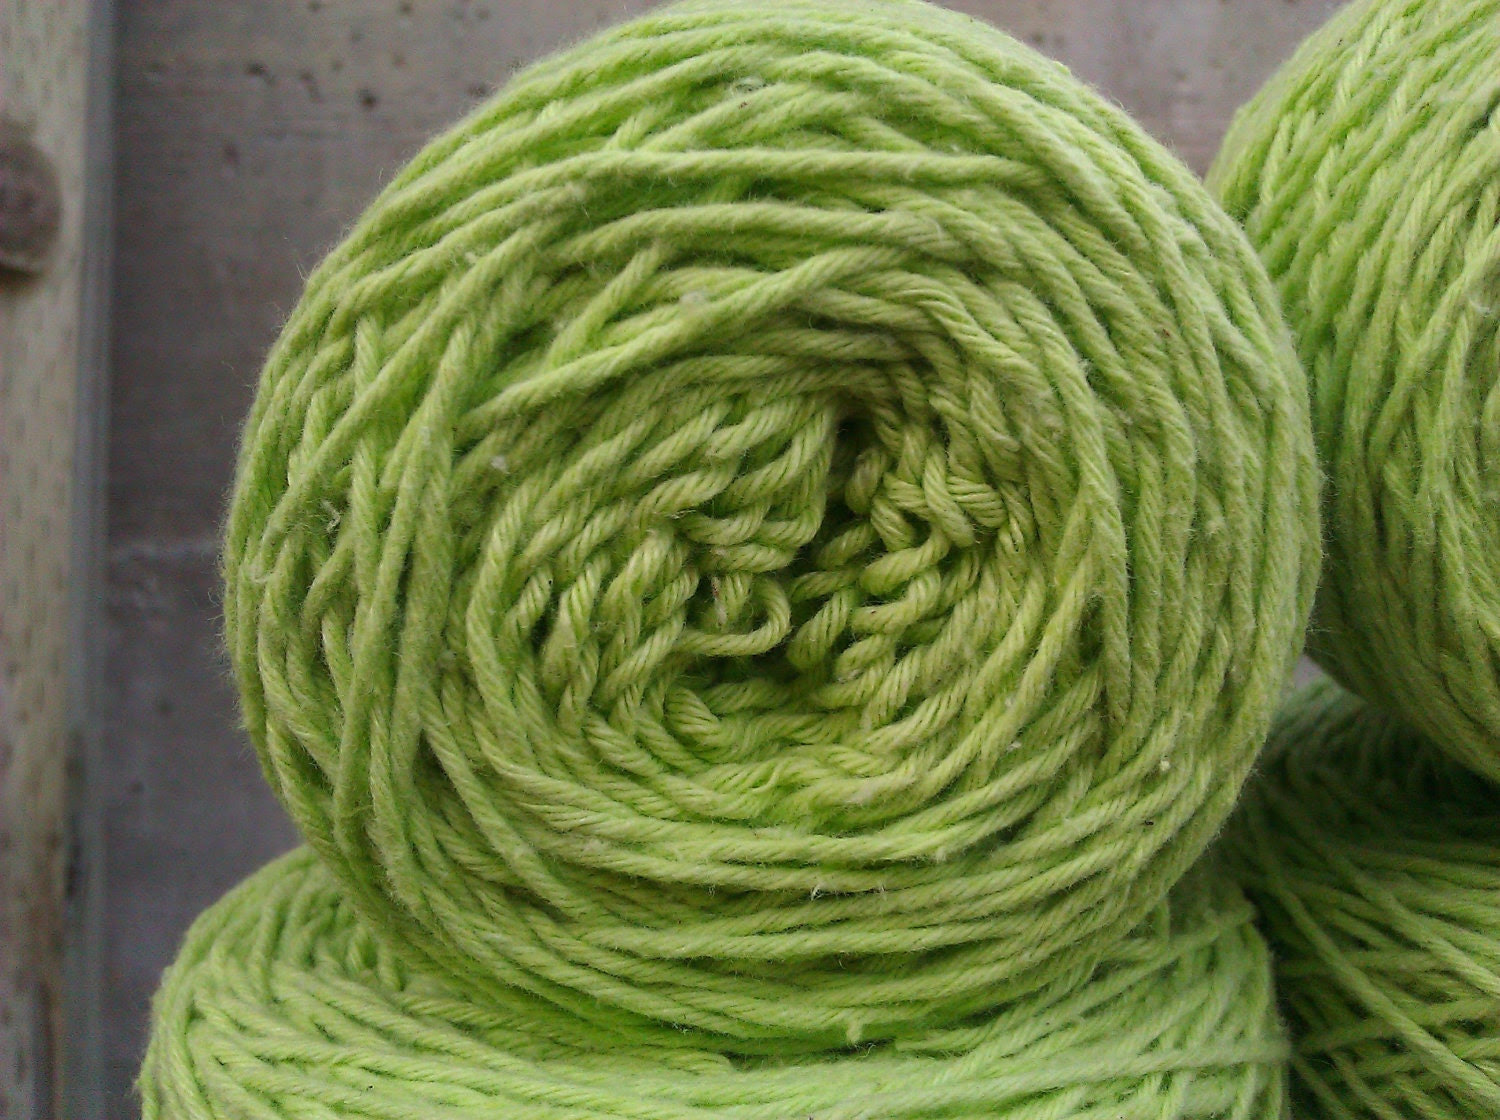 Lime Green Reclaimed Baby/Sock weight Cotton Yarn - 324 yards - KnotYourNeedles